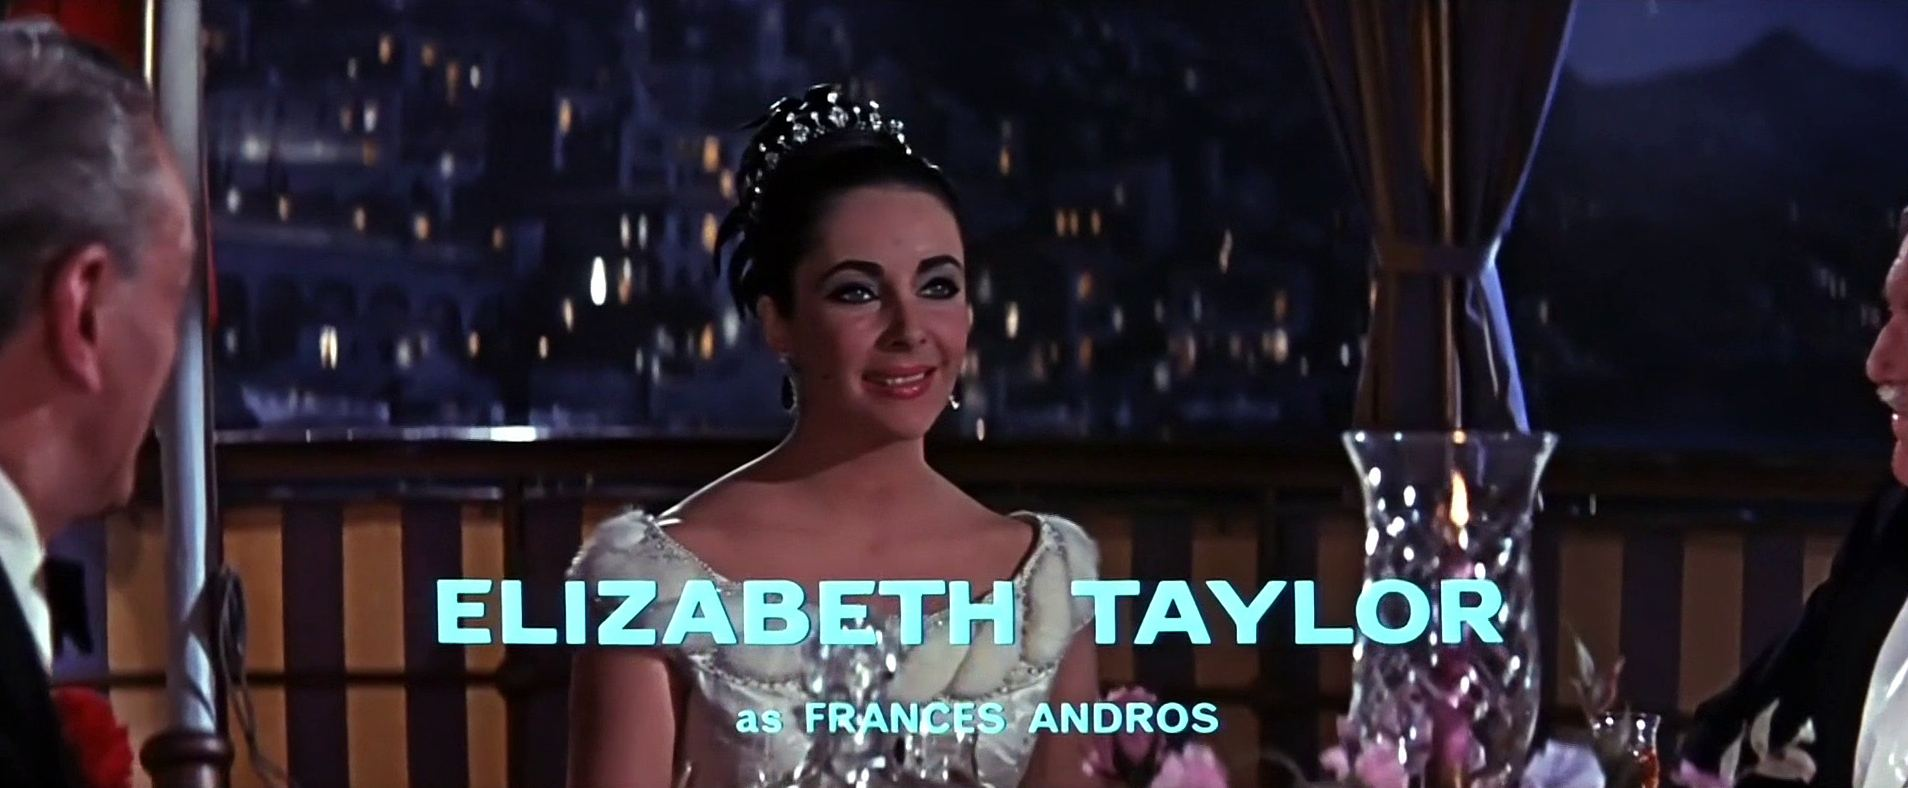 Main title from The VIPs (1963) (3). Elizabeth Taylor as Frances Andros